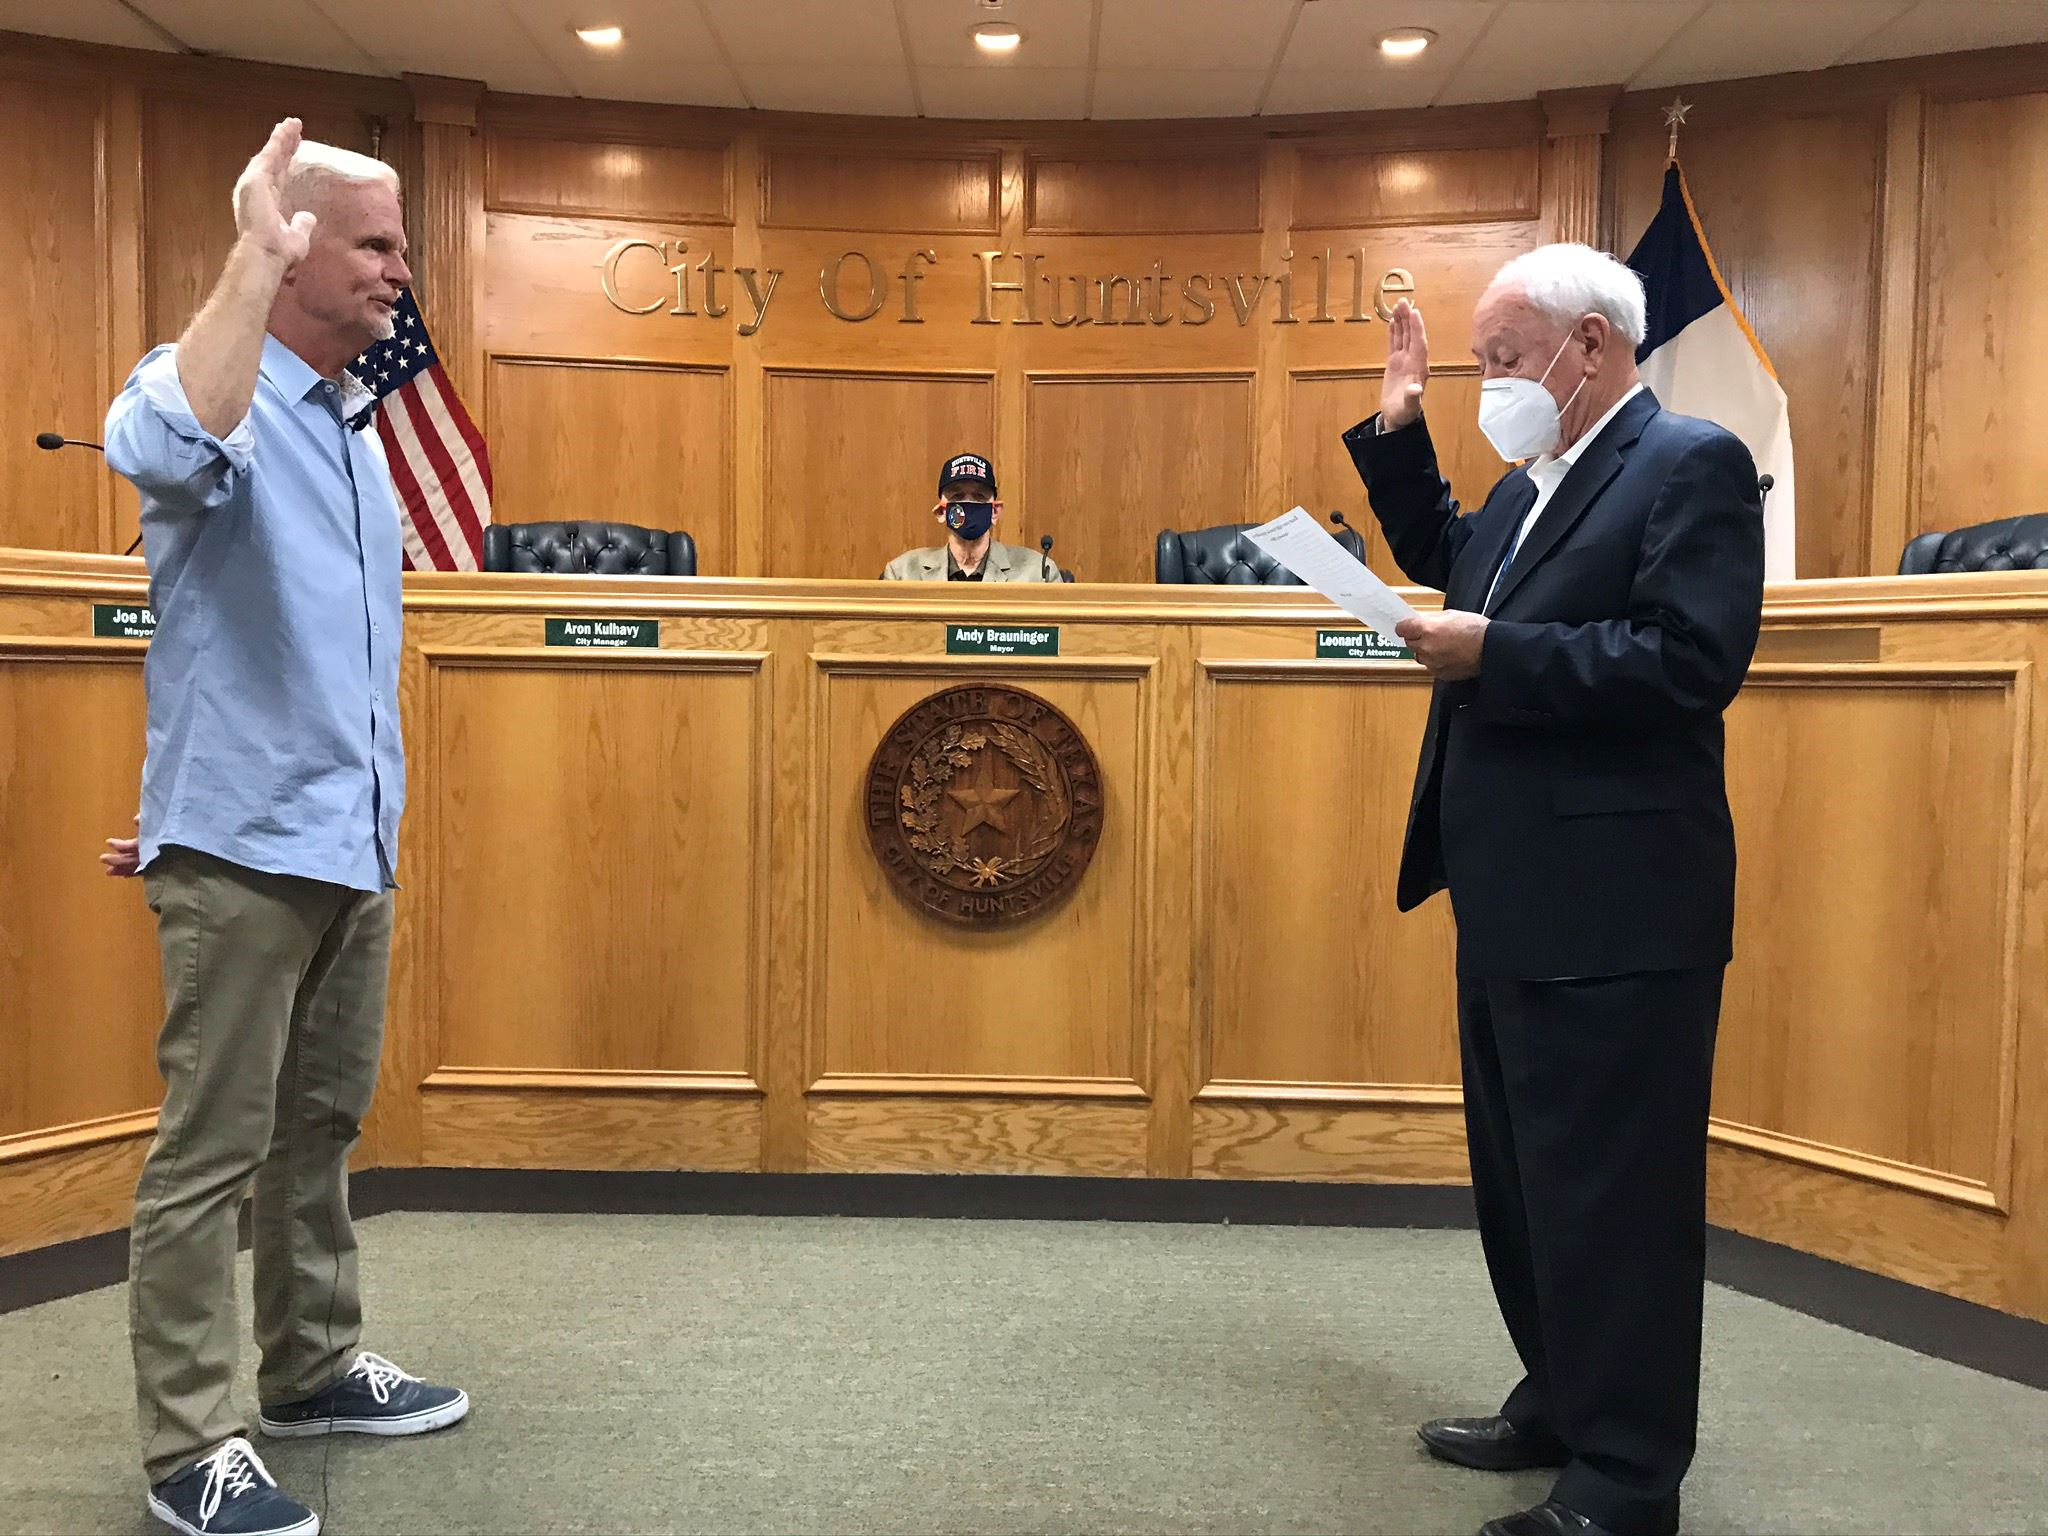 County Judge Danny Pierce swearing in Bert Lyle